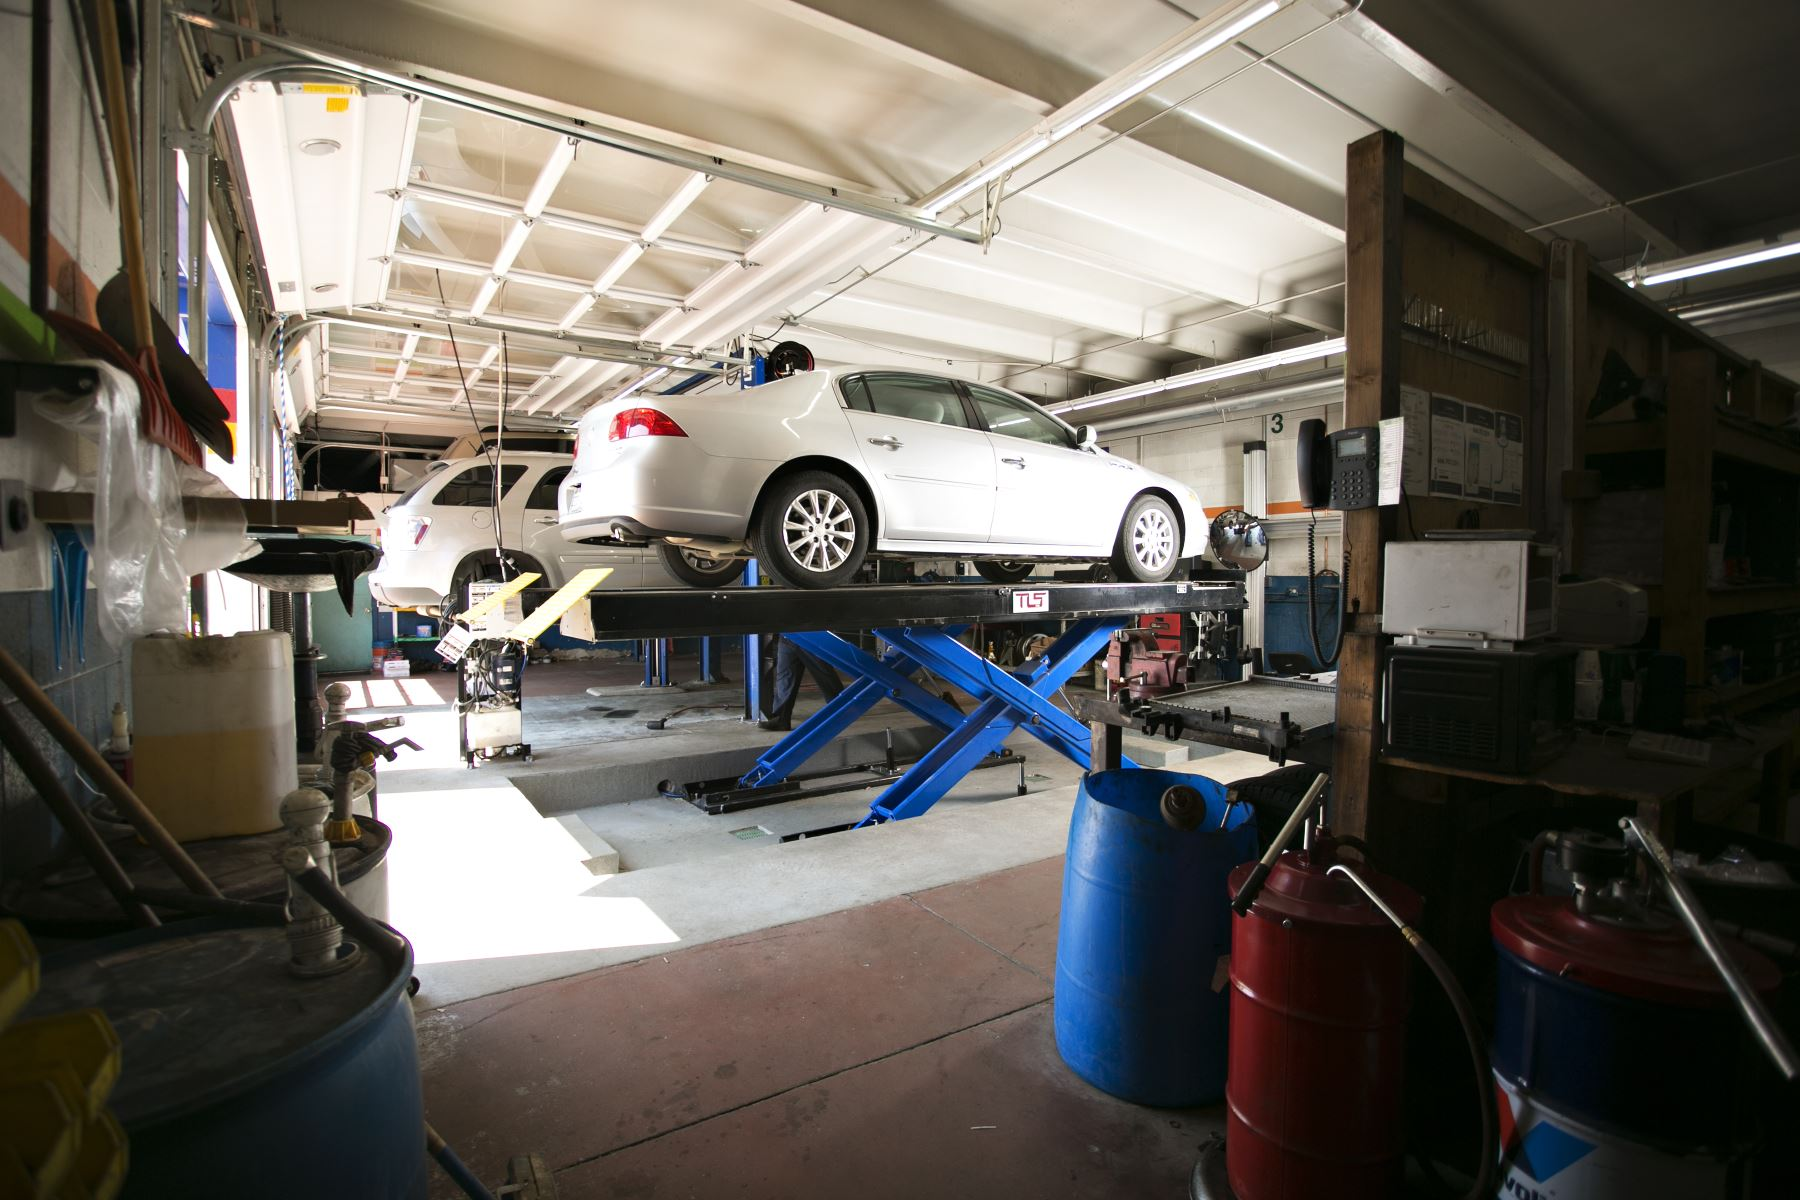 Fleet Car Repair | Pickering's Auto Service